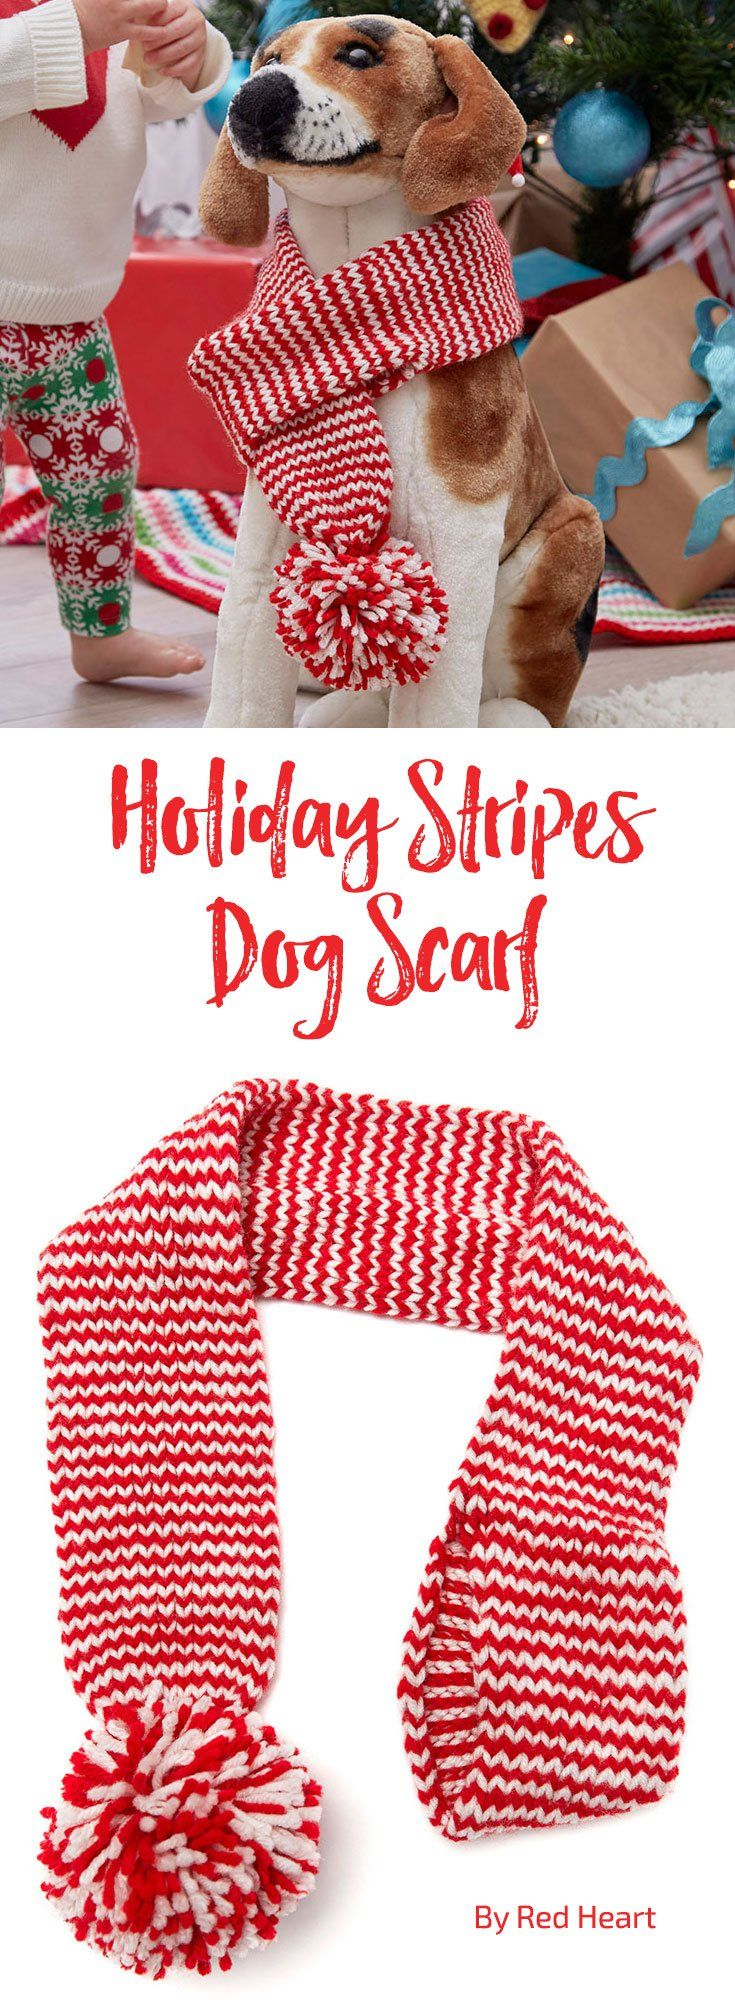 Holiday Stripes Dog Scarf free knit pattern in Super Saver.